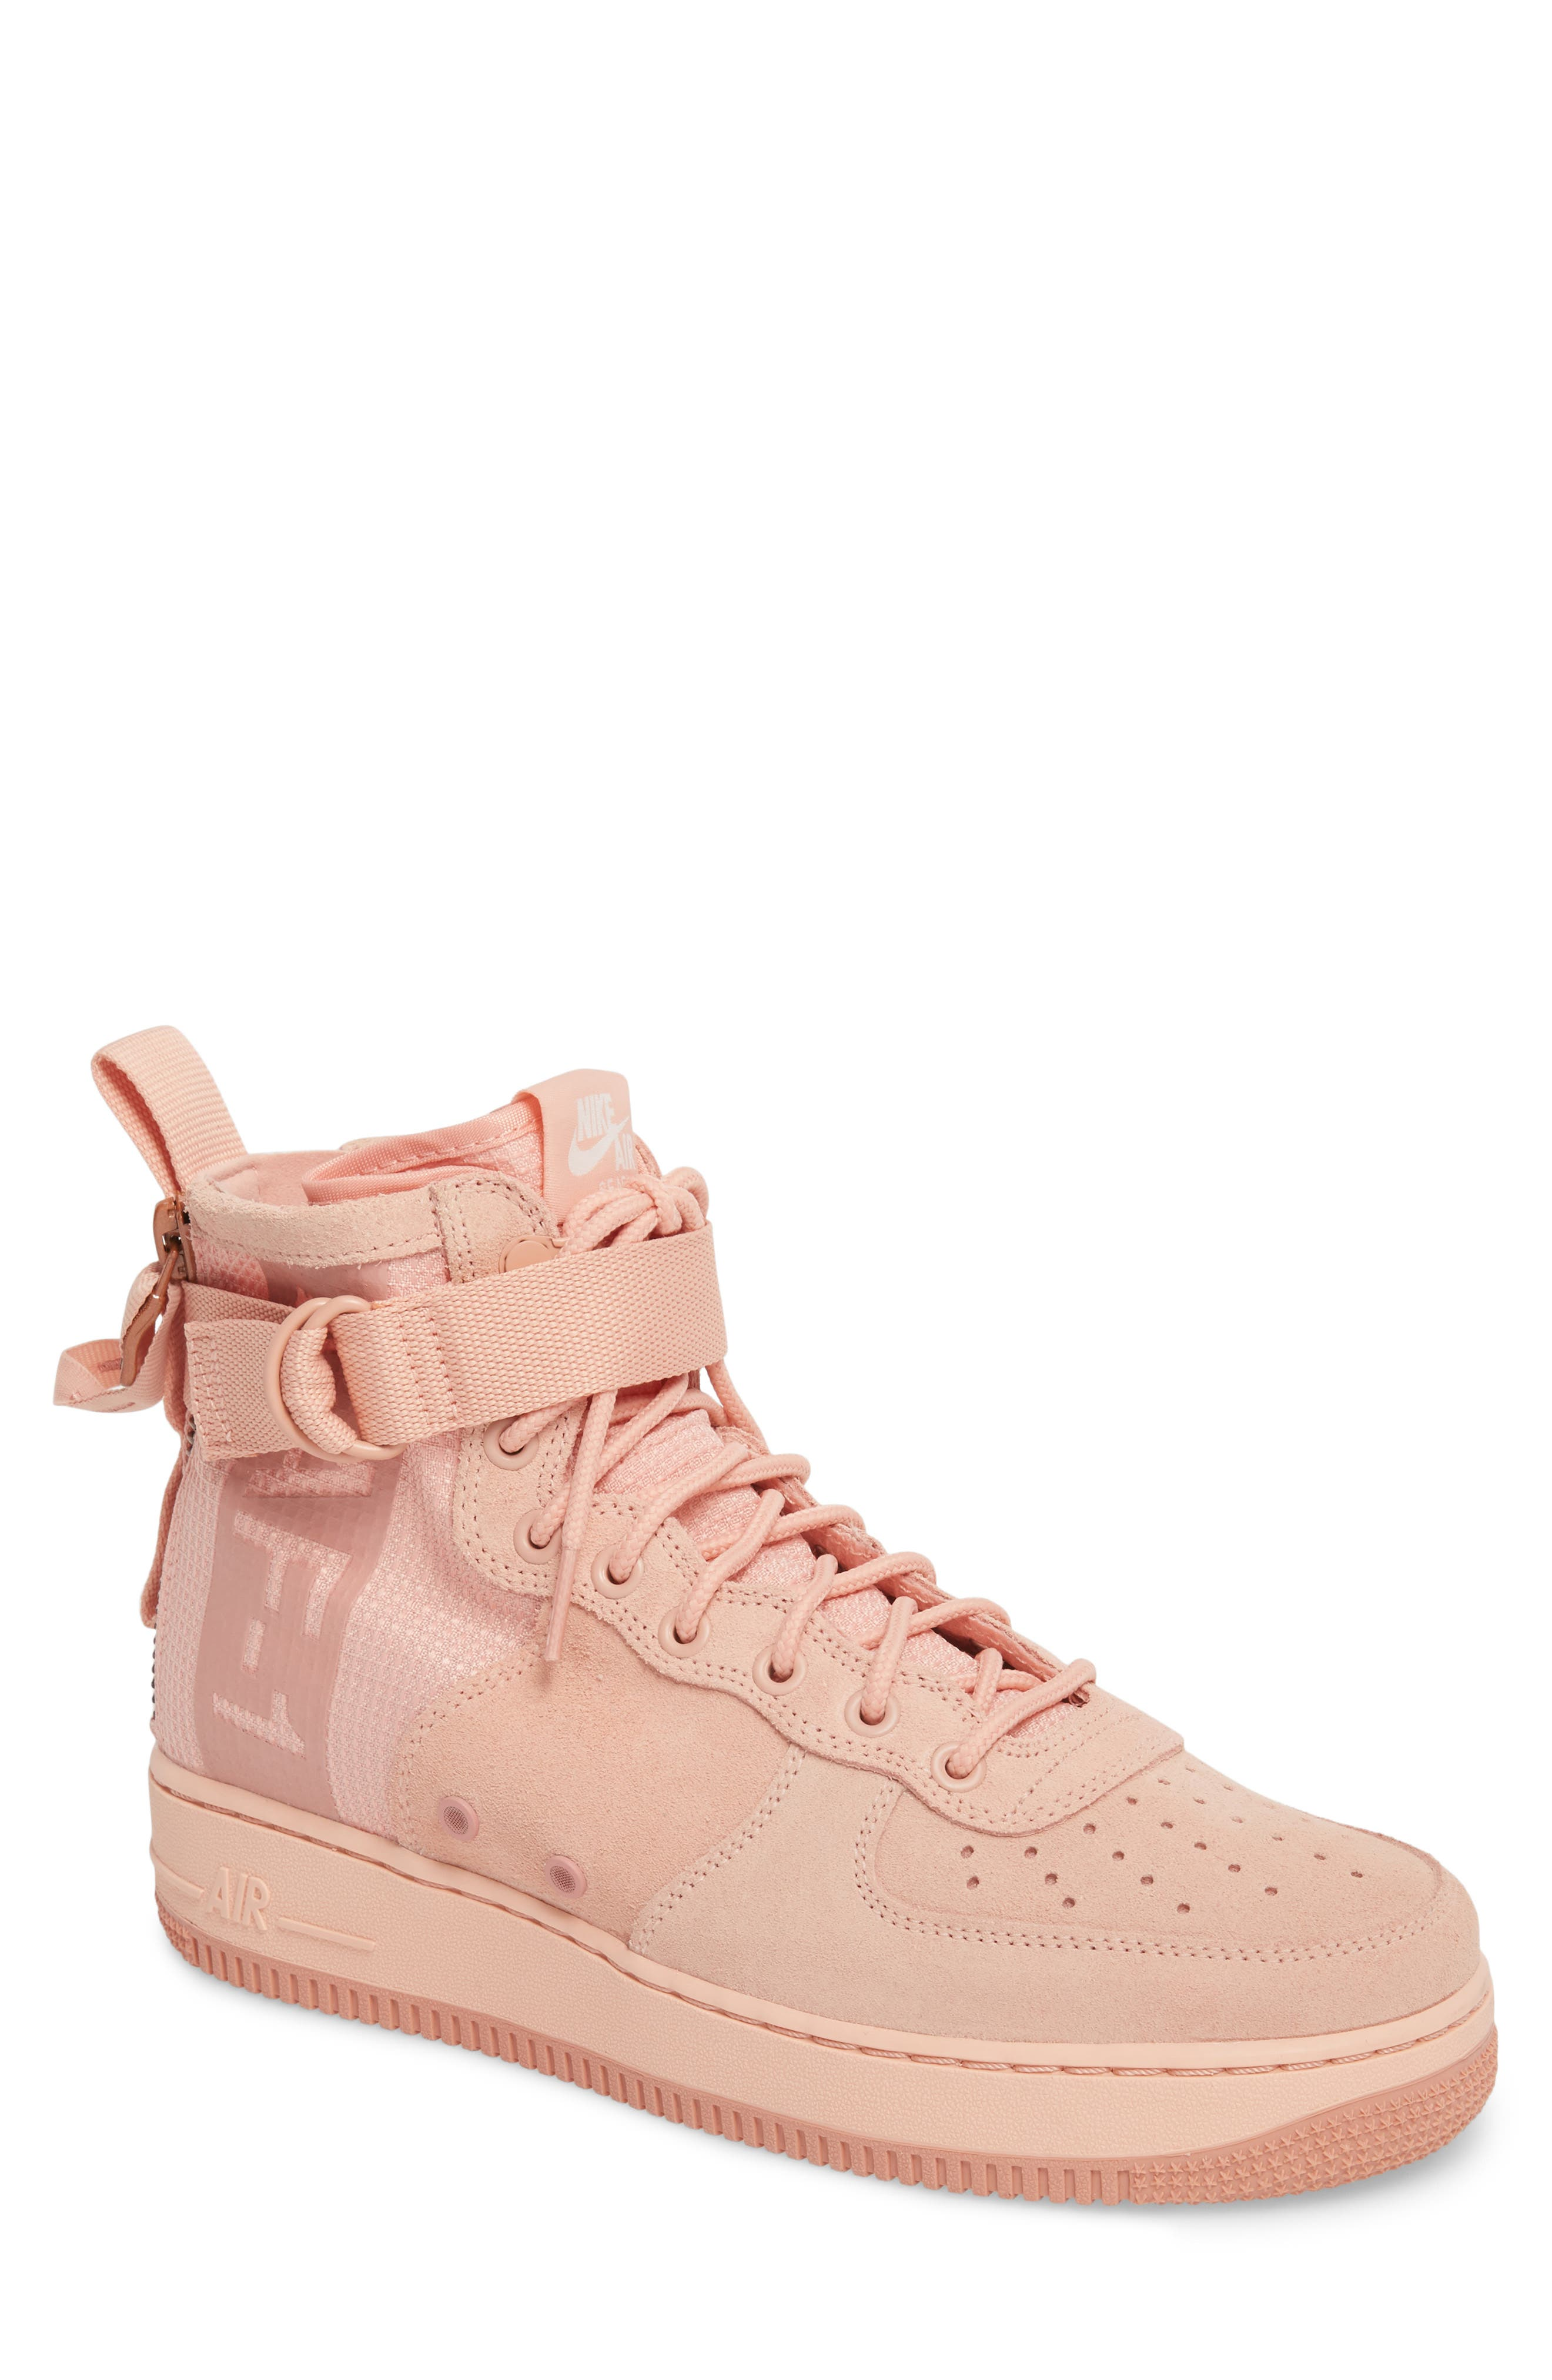 SF Air Force 1 Mid Suede Sneaker,                             Main thumbnail 1, color,                             Coral Stardust/ Red Stardust